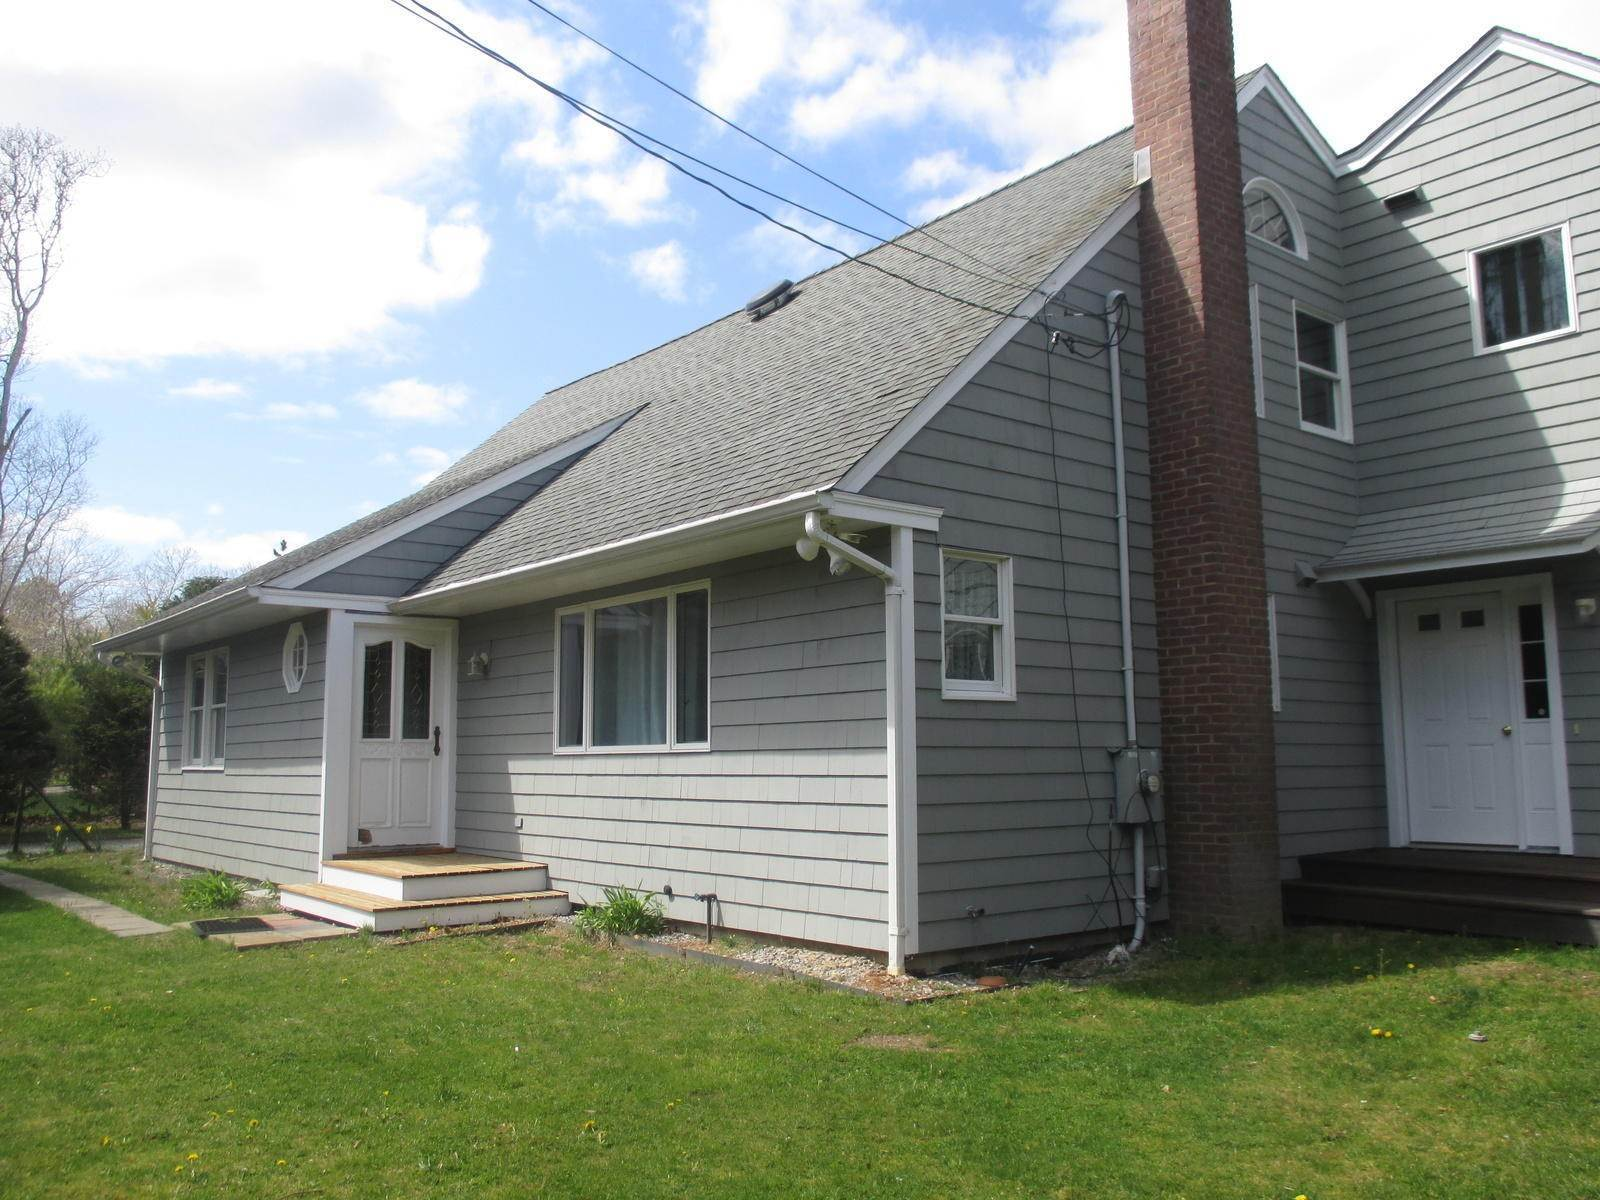 Single Family Home at Spacious Cape With Pool On Large Lot - Village Fringe East Hampton, NY 11937